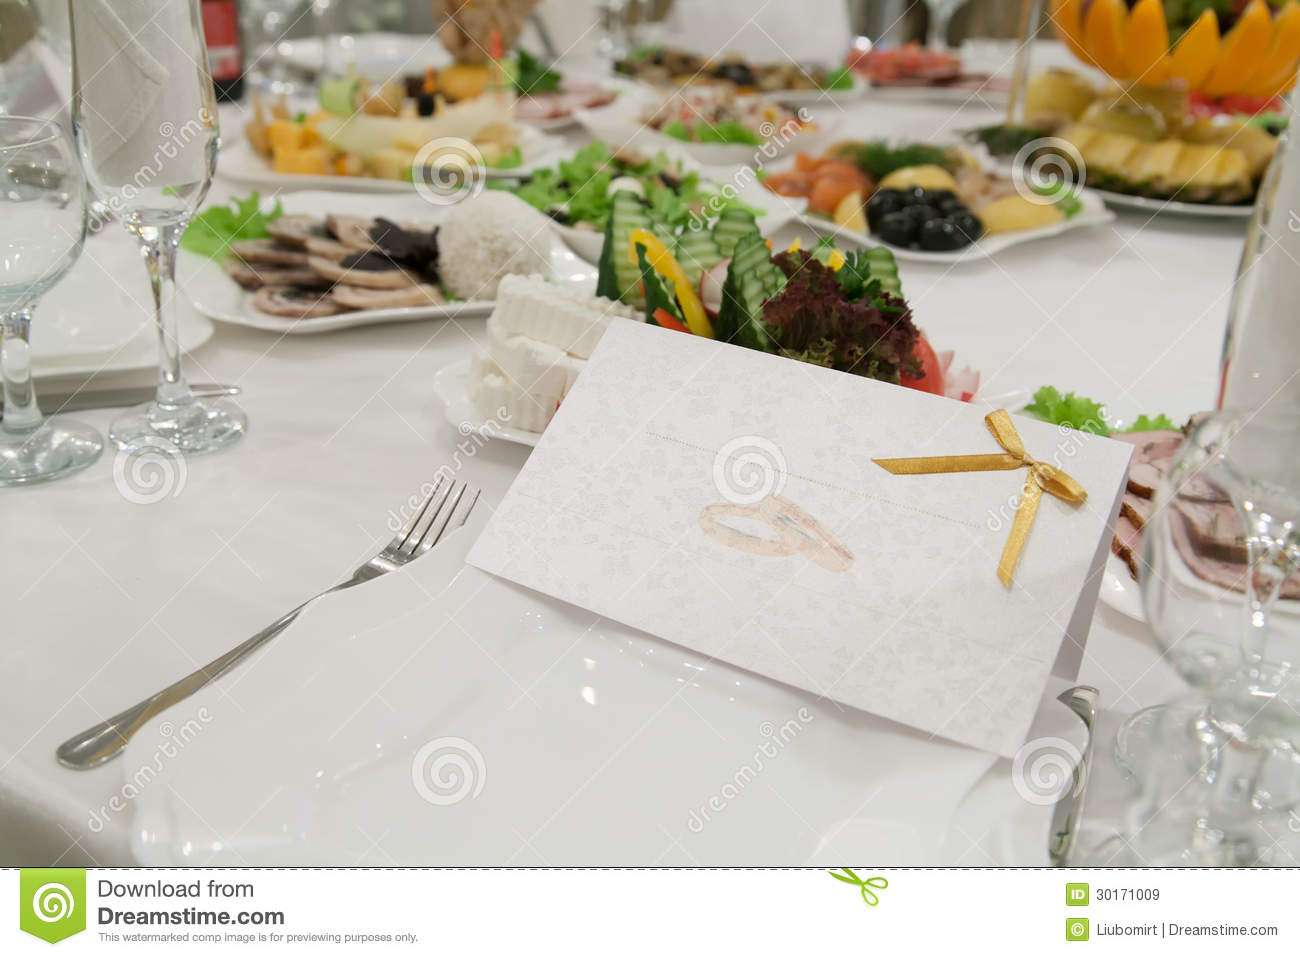 Invitation vide de mariage image stock image du caf for La table de 9